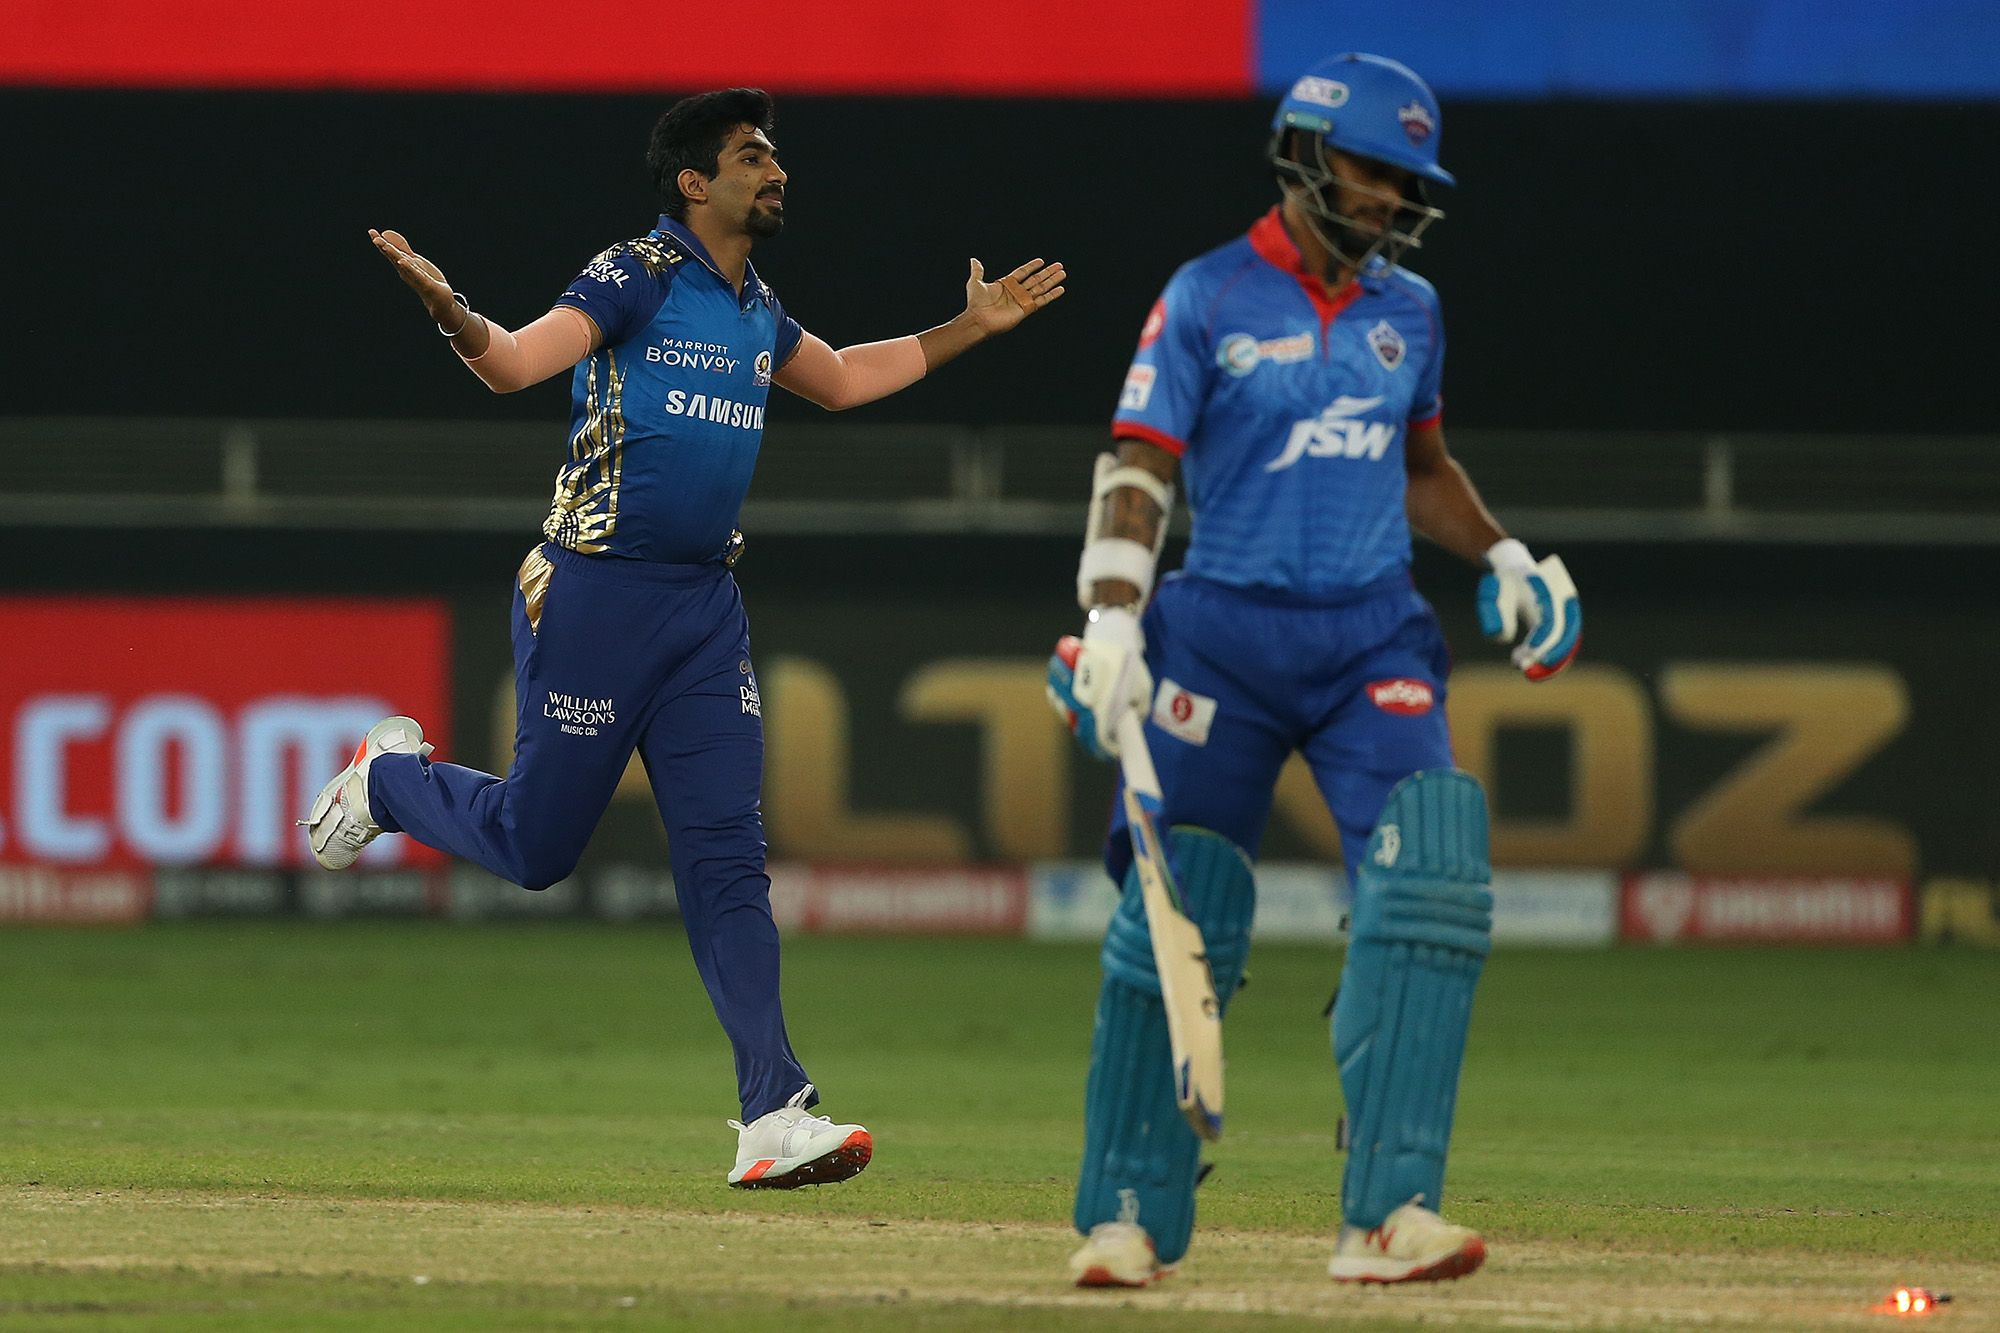 Jasprit Bumrah has taken 27 wickets in this IPL season so far (Photo - BCCI / IPL)